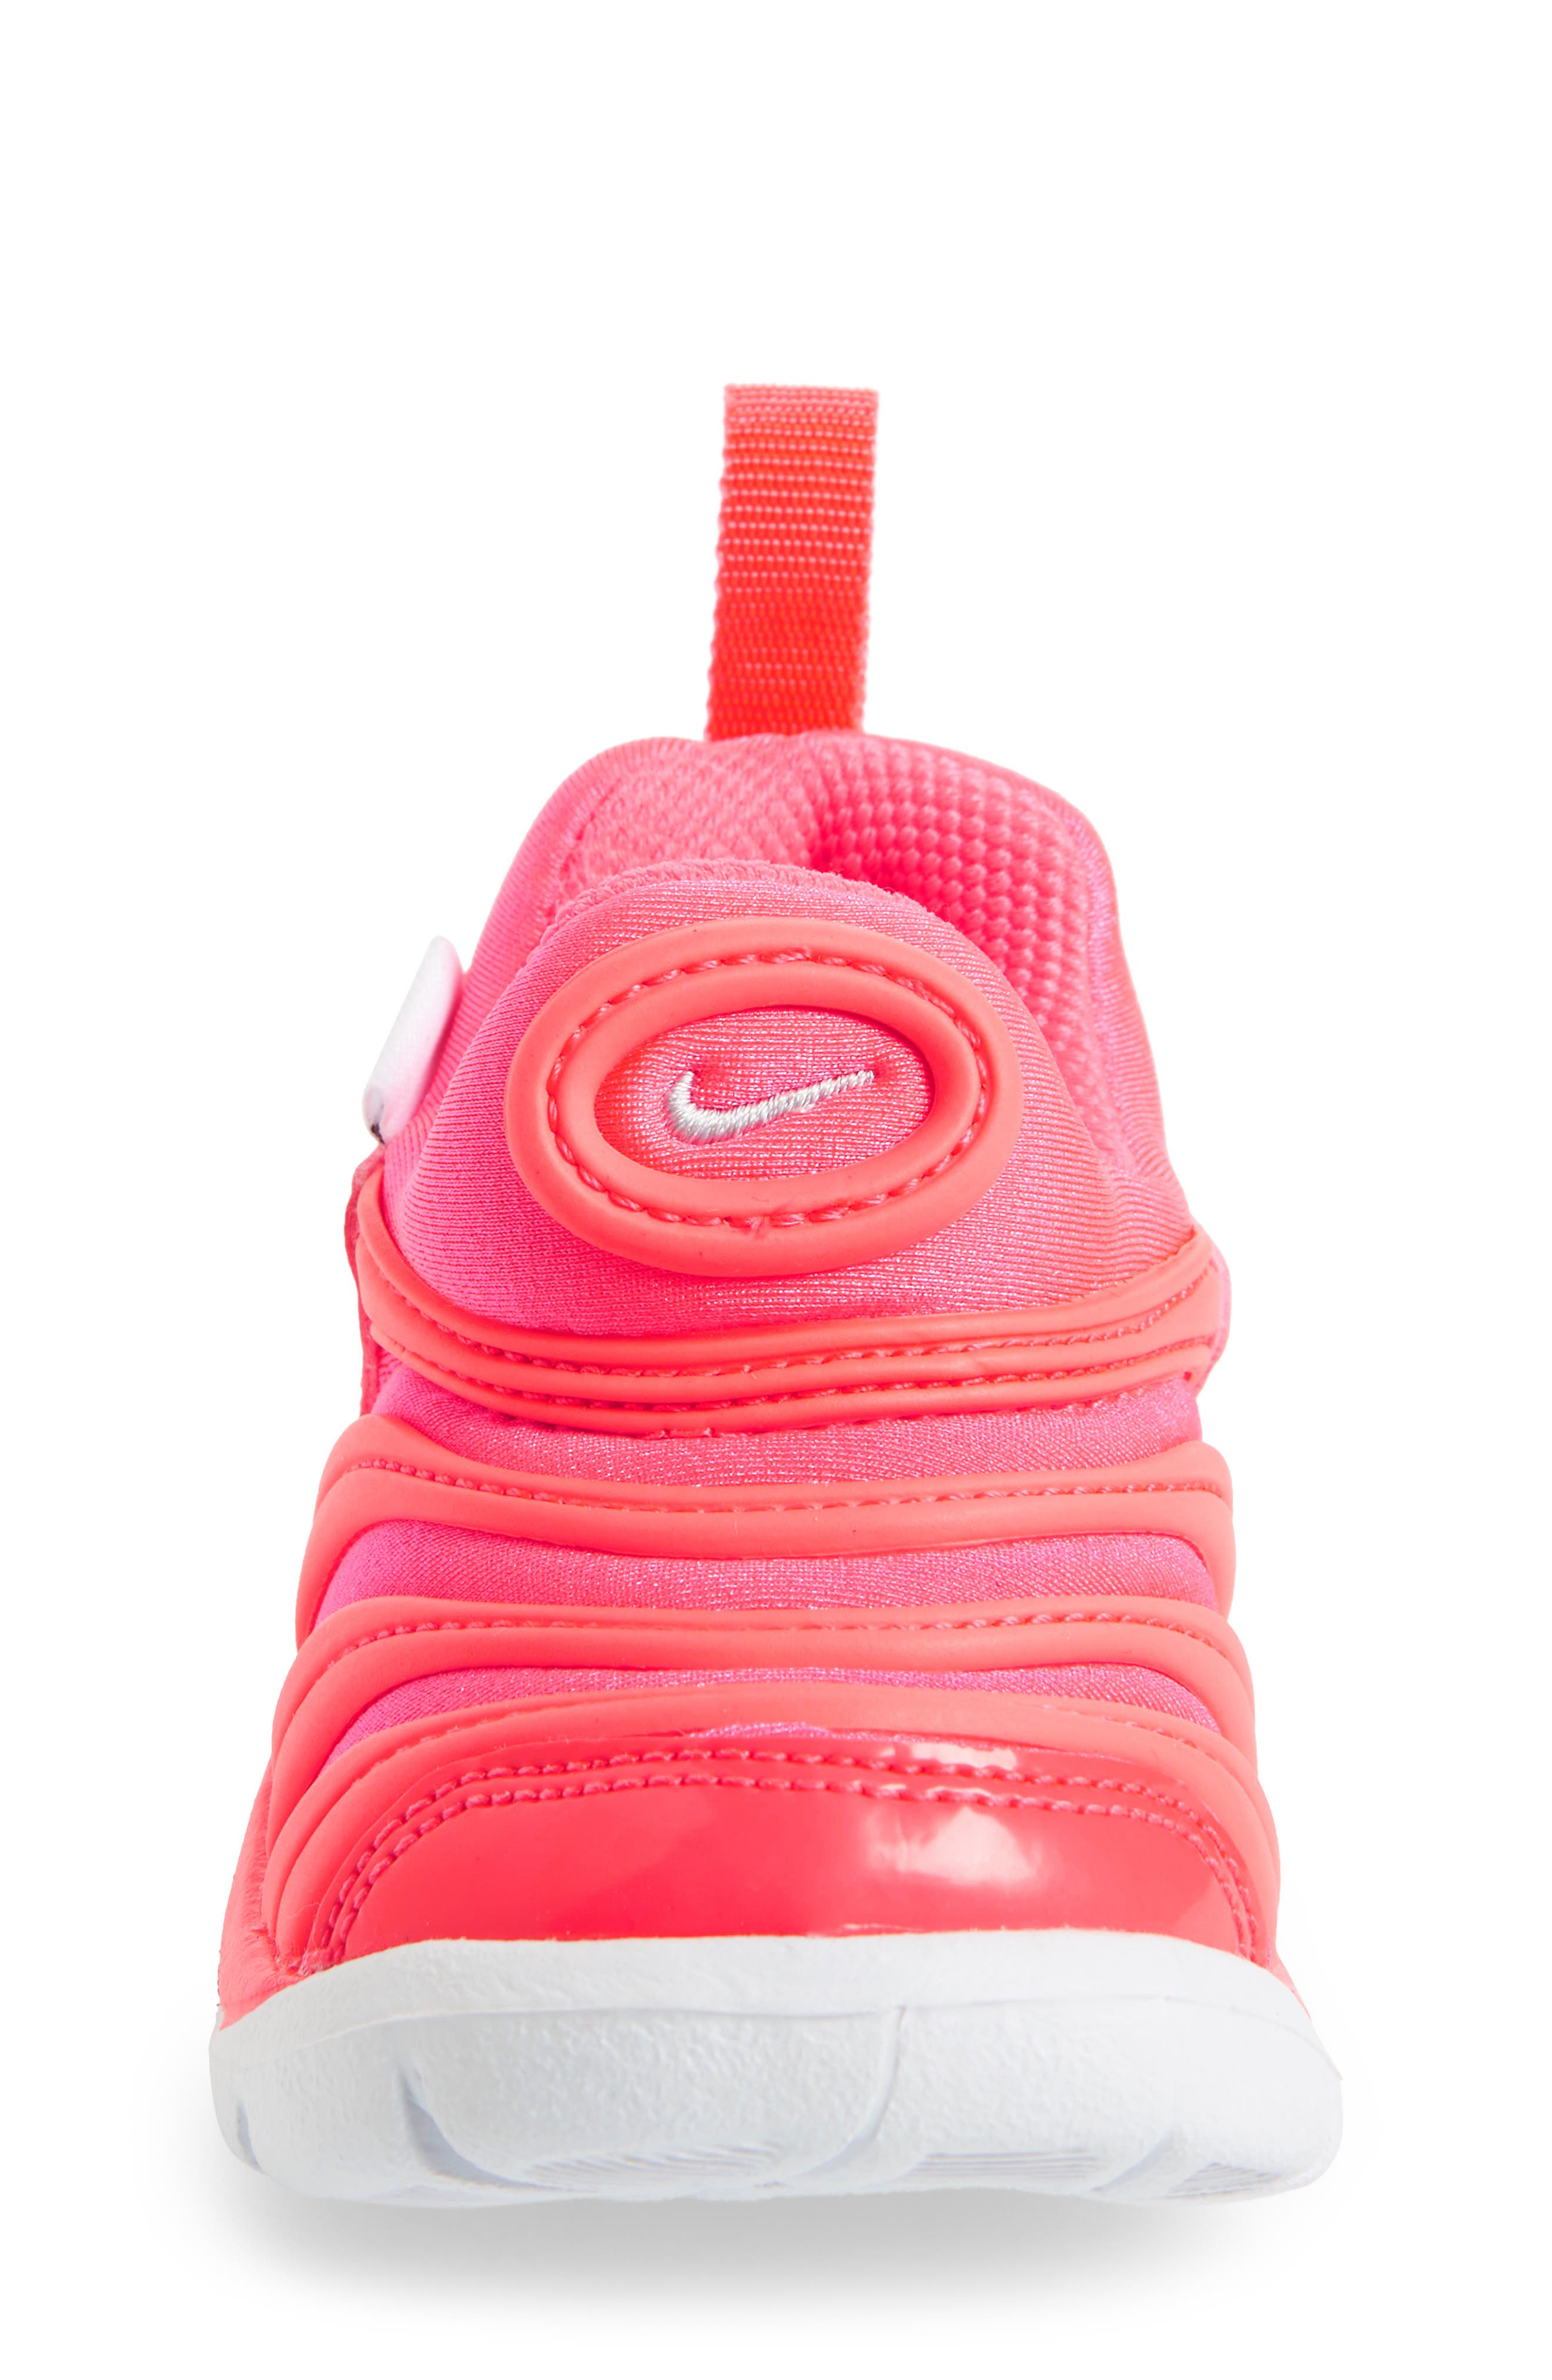 Dynamo Free Sneaker,                             Alternate thumbnail 4, color,                             Racer Pink/ Silver/ Hot Punch